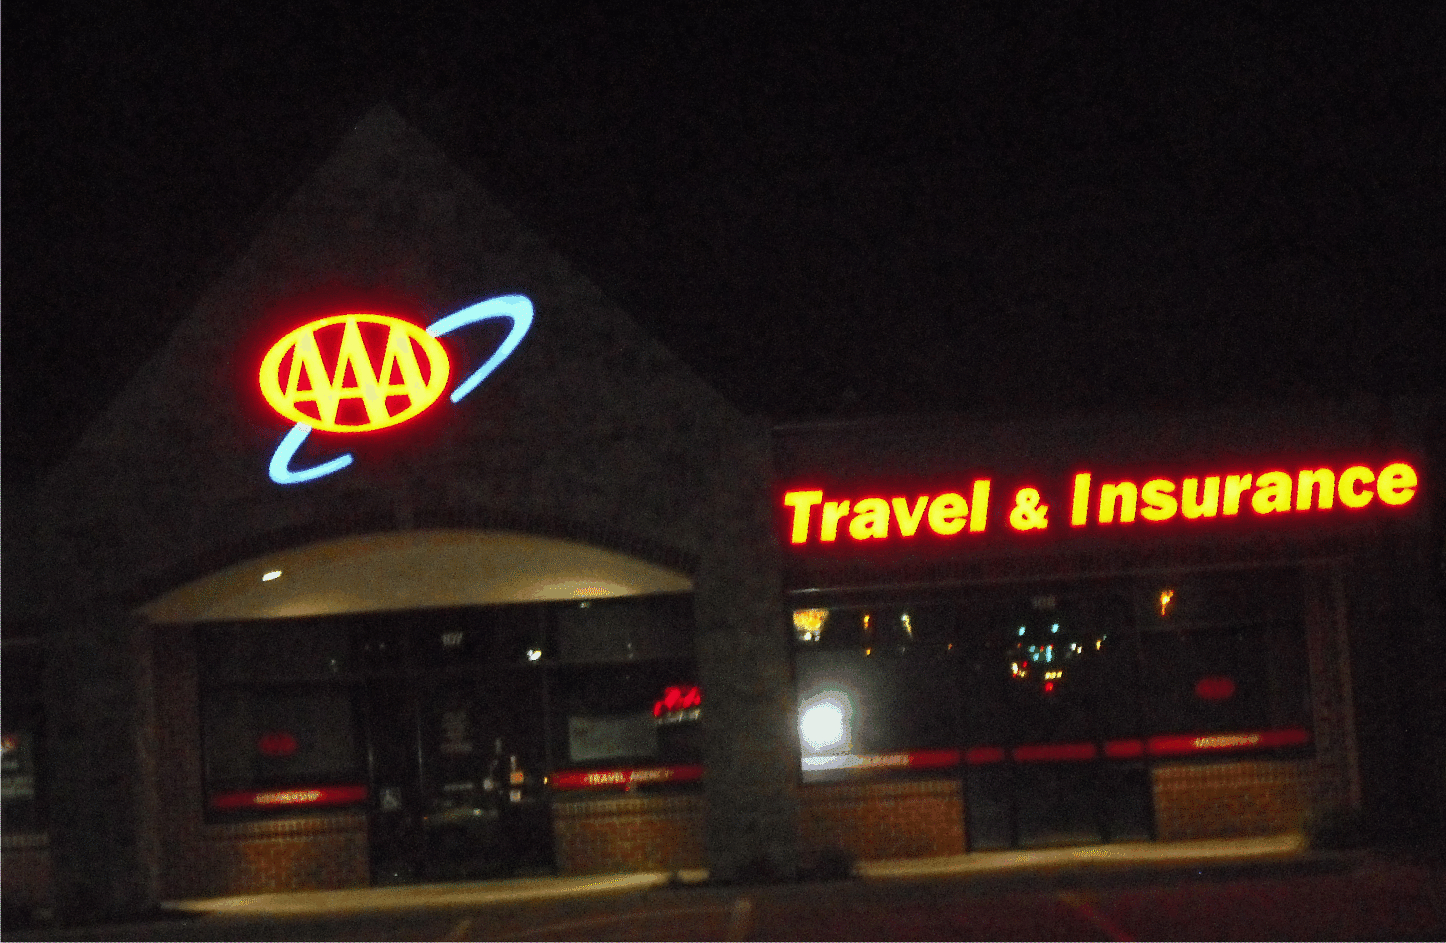 AAA LED signs by SignWorks Omaha